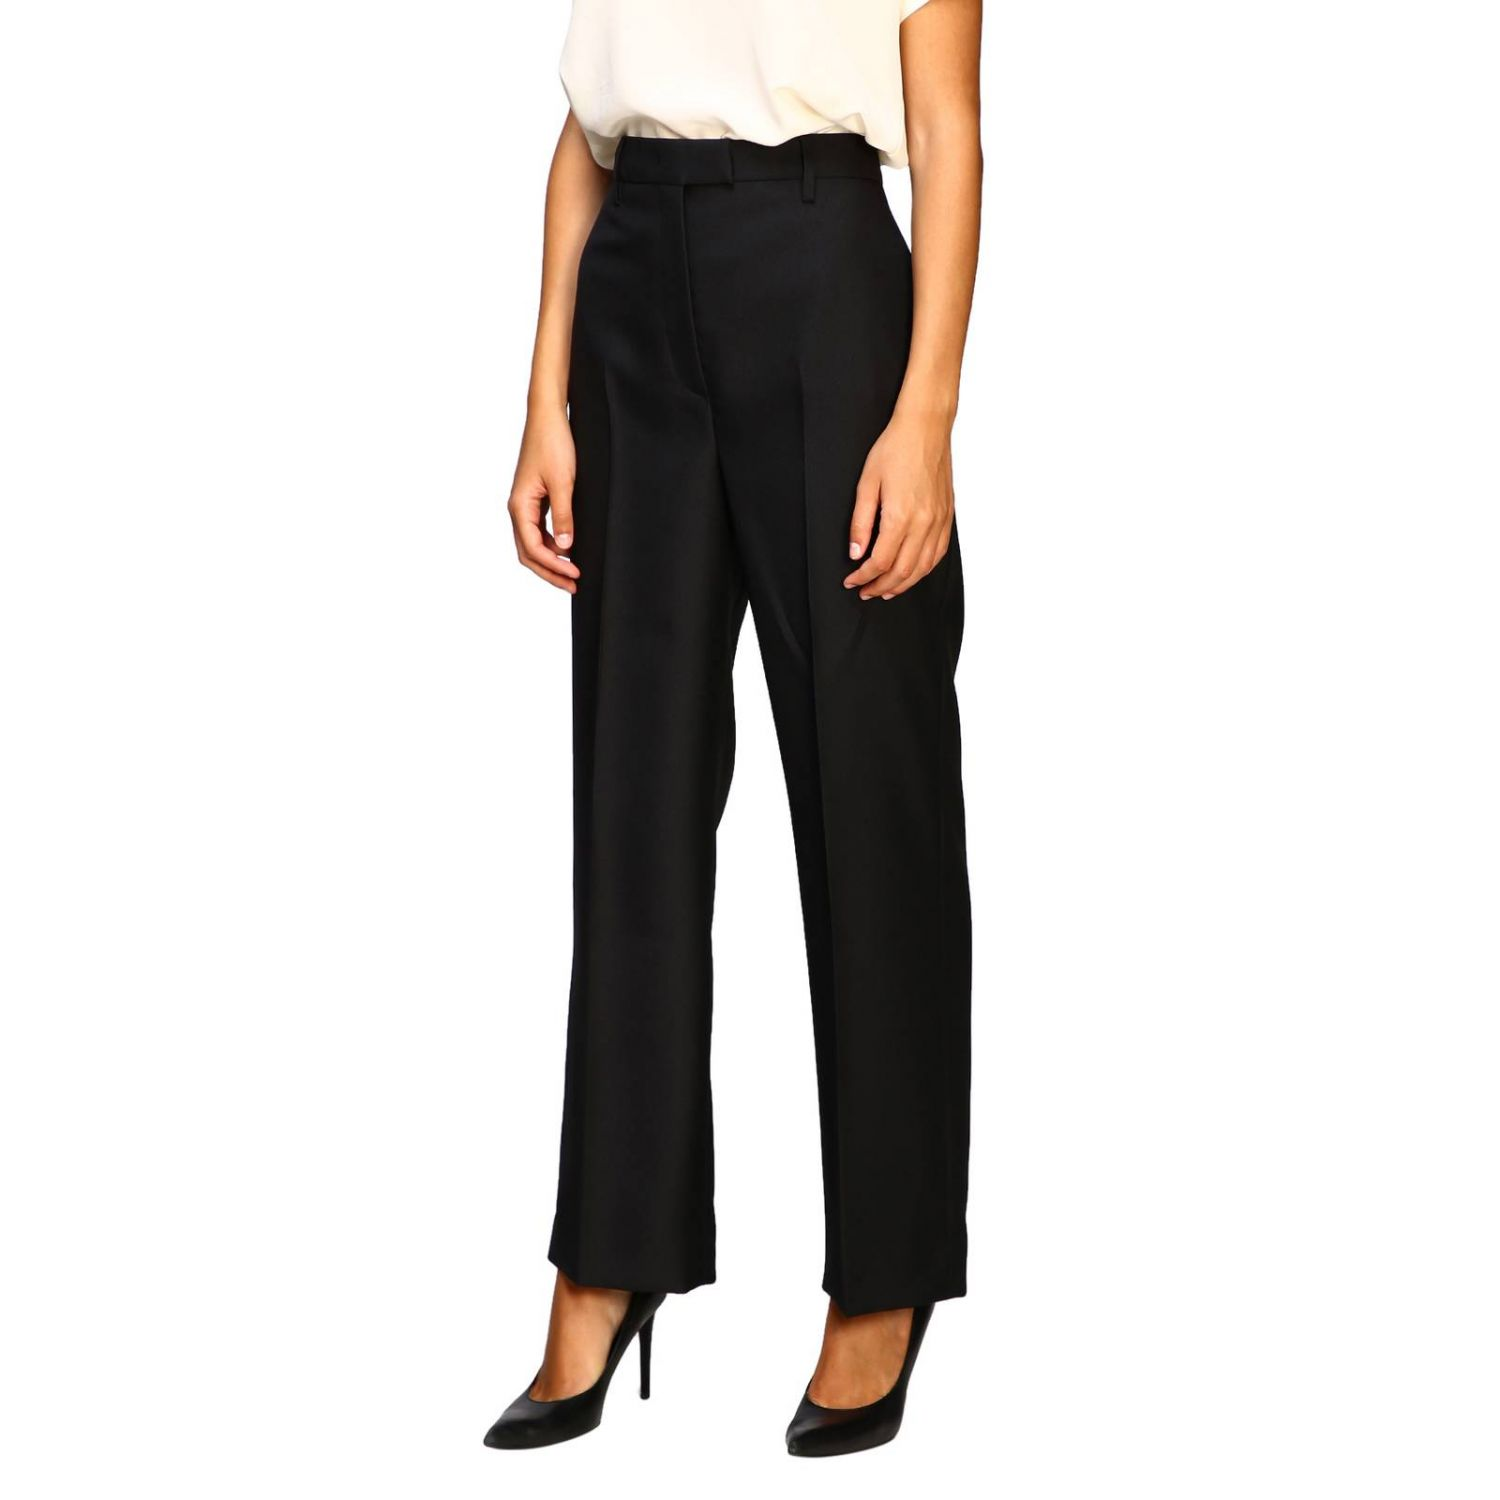 Prada classic high-waisted pants black 4